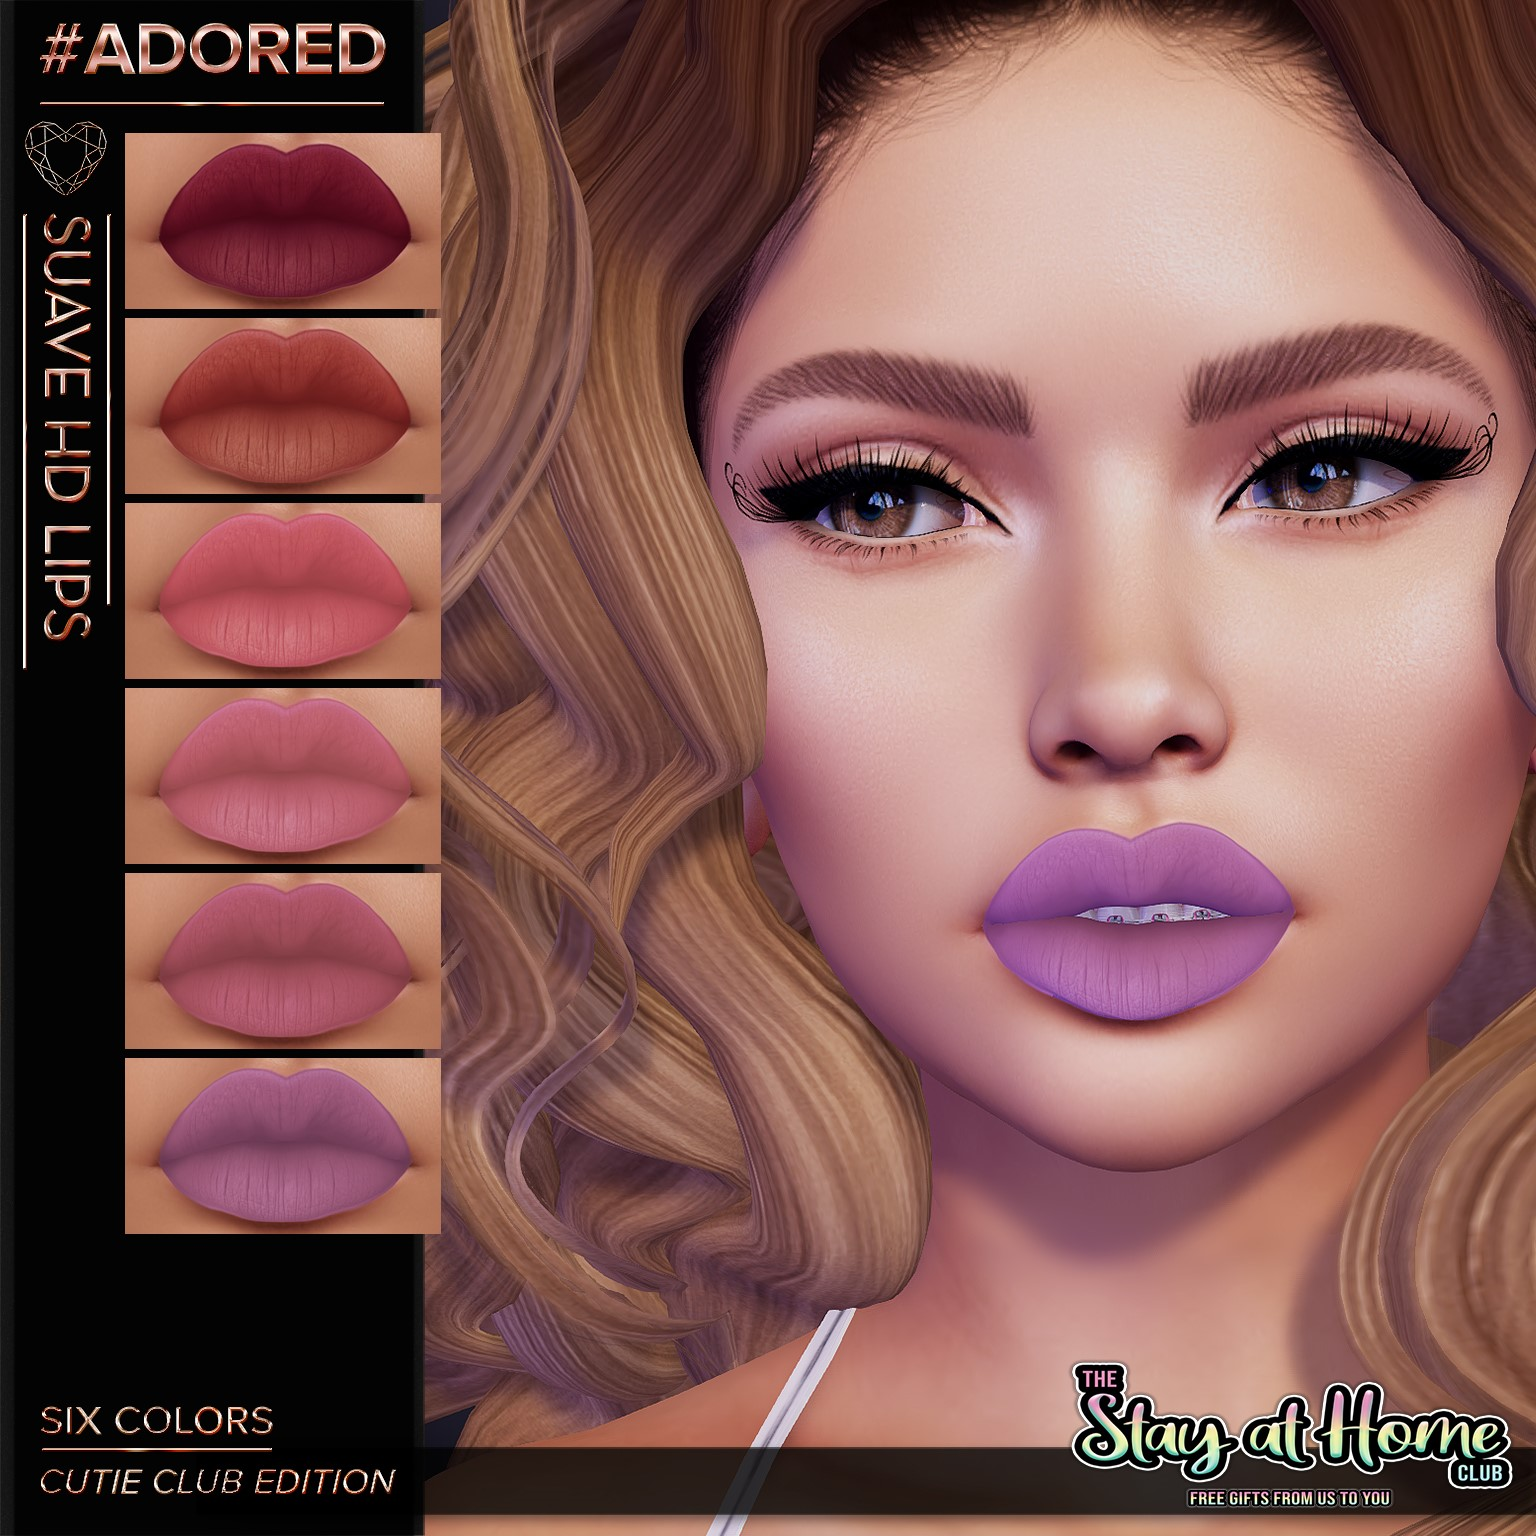 Suave D Lips - #adored